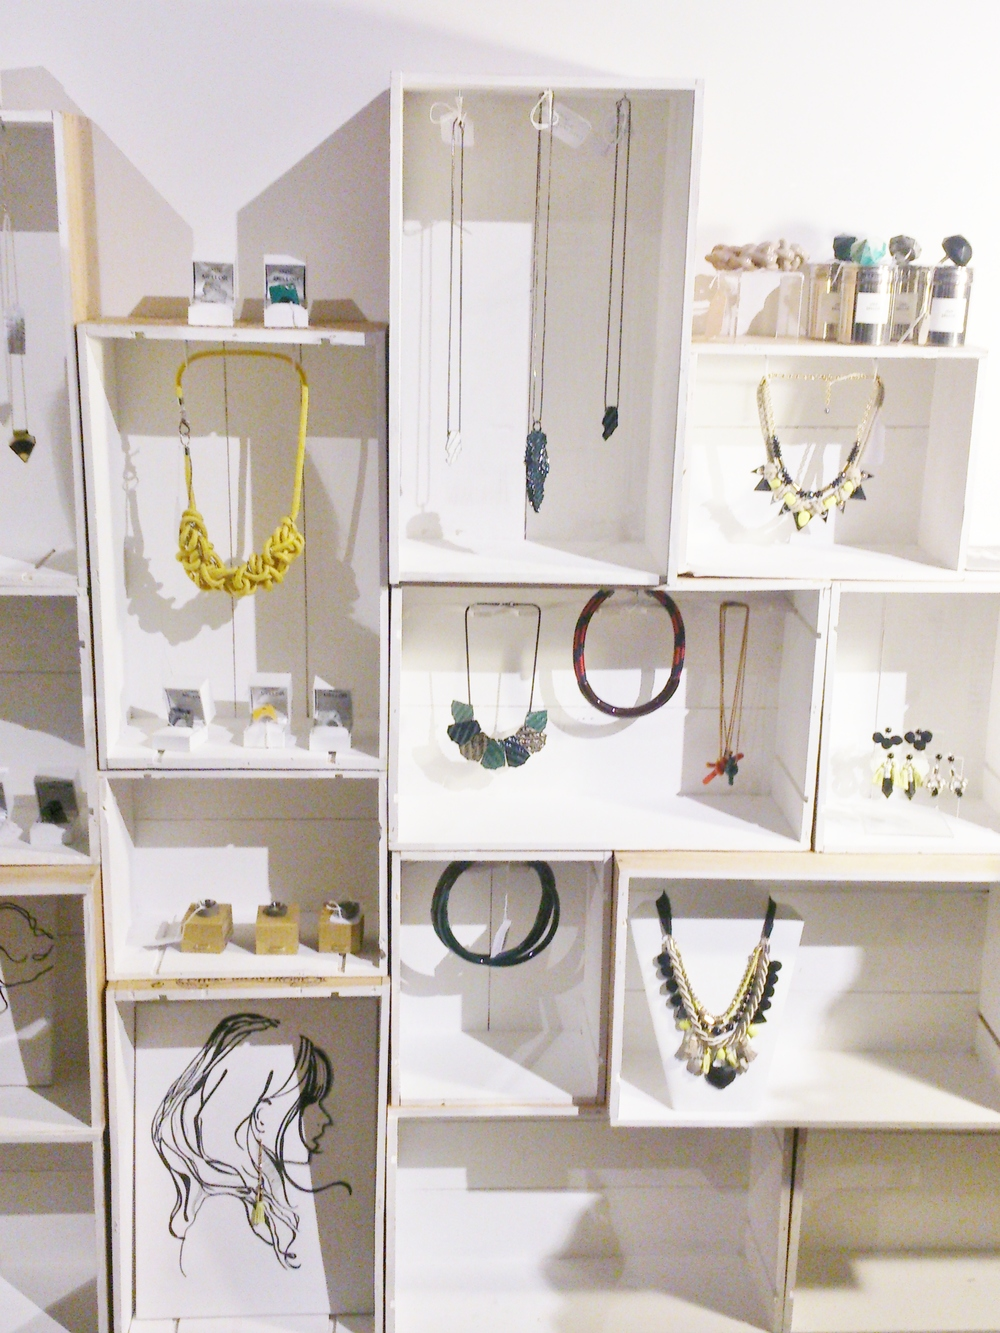 jade mellor shoreditch muse creative showcase somerset house startups jewellery.jpg